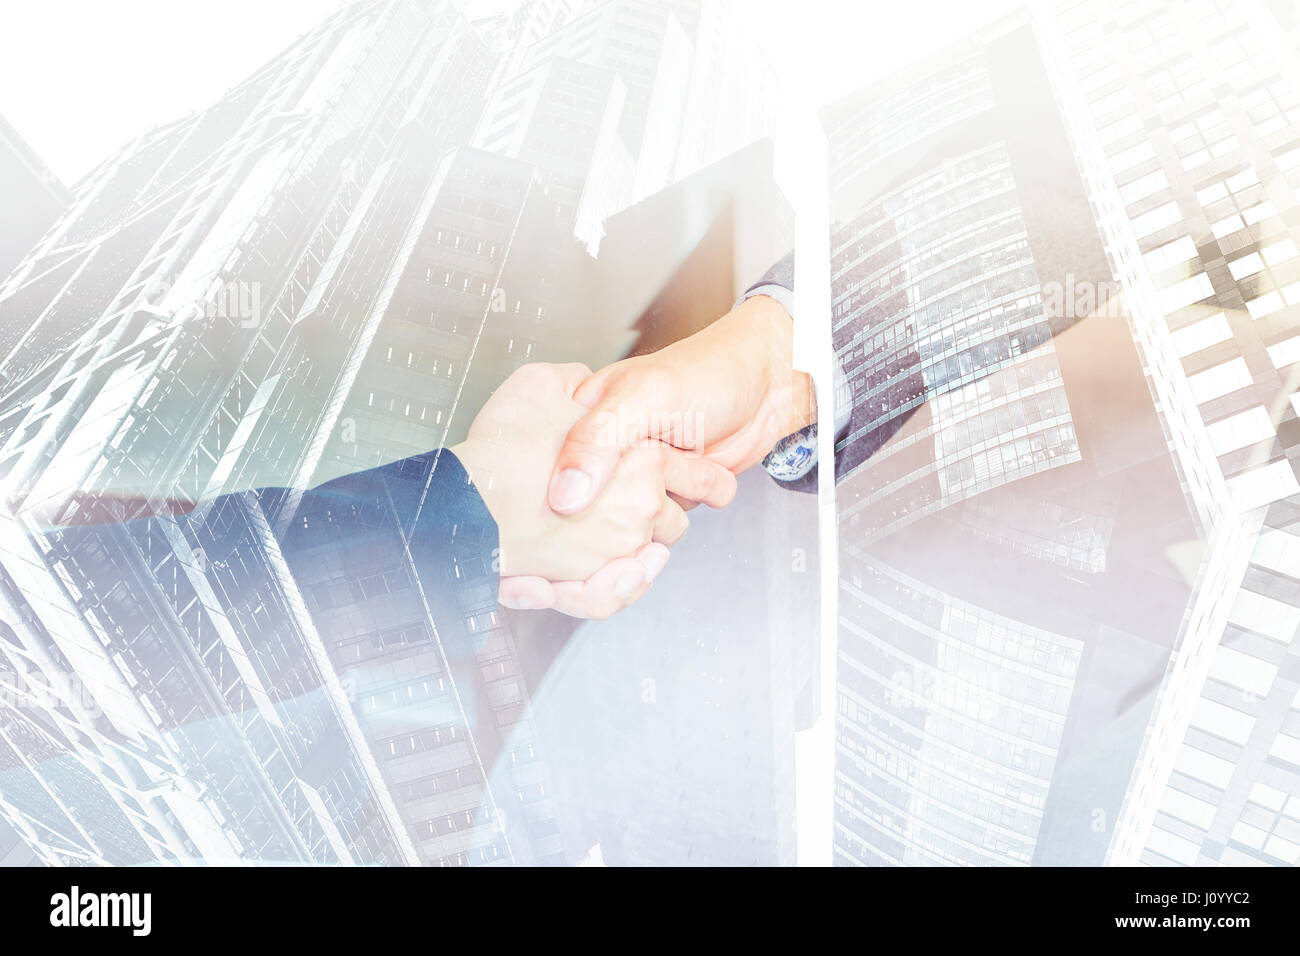 Double exposure of Close up businesswoman and businessman handshake with cityscape building, Business partnership - Stock Image